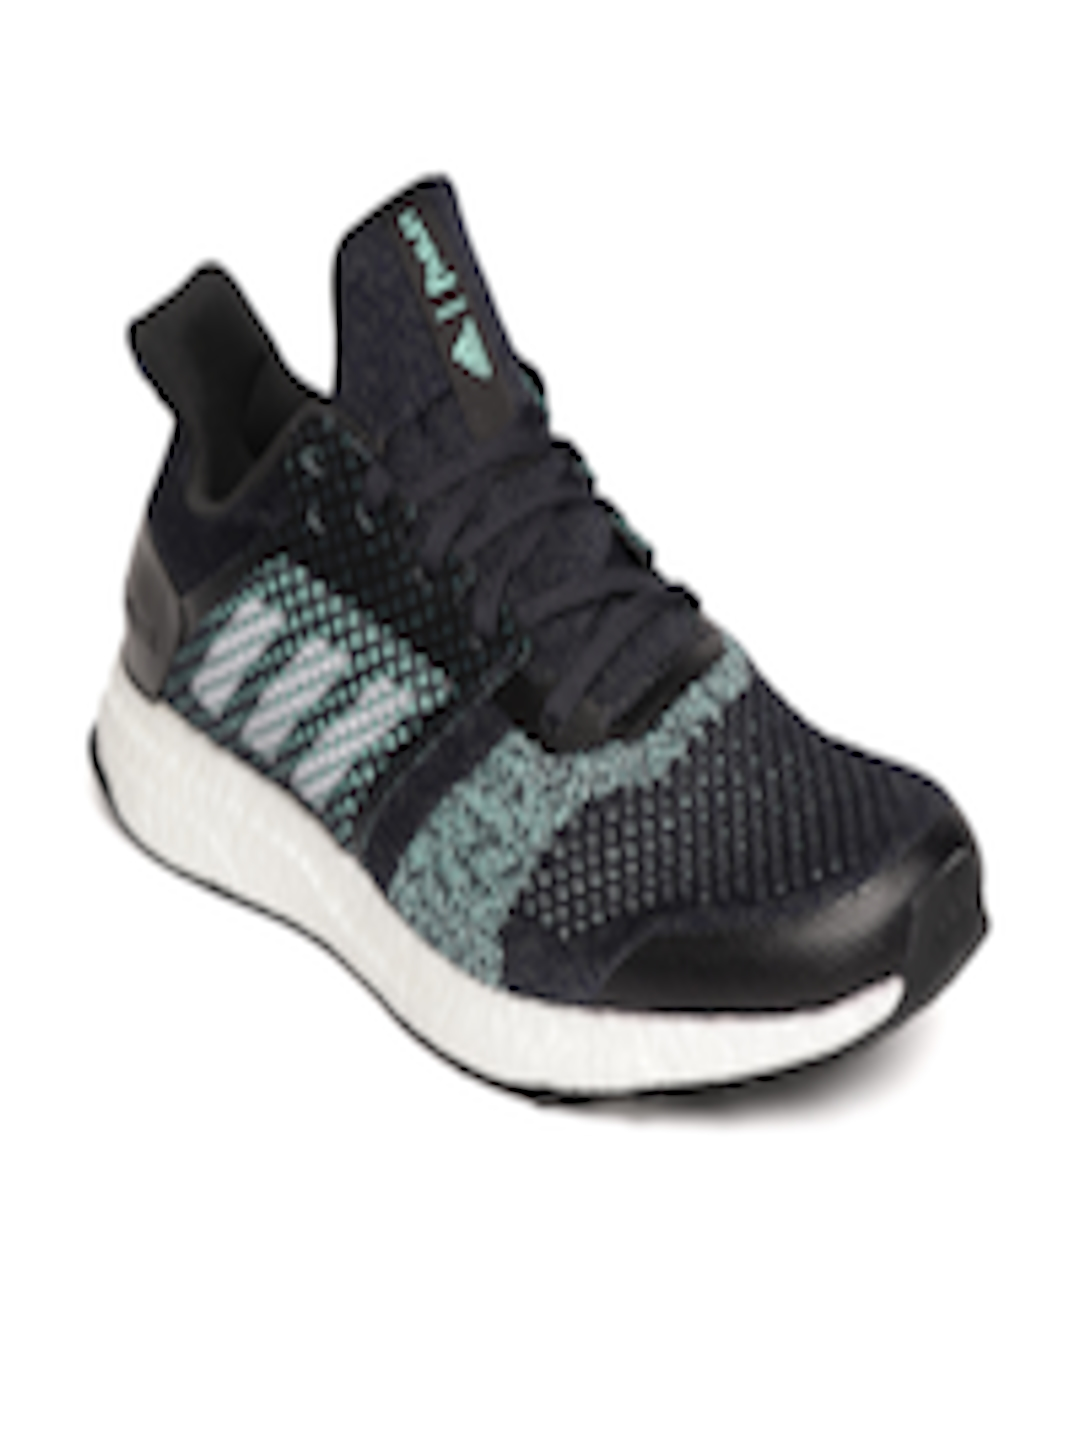 quality design c1c4b 26cad Buy ADIDAS Men Navy Blue   Sea Green Ultraboost ST M Parley Running Shoes - Sports  Shoes for Men 6841653   Myntra